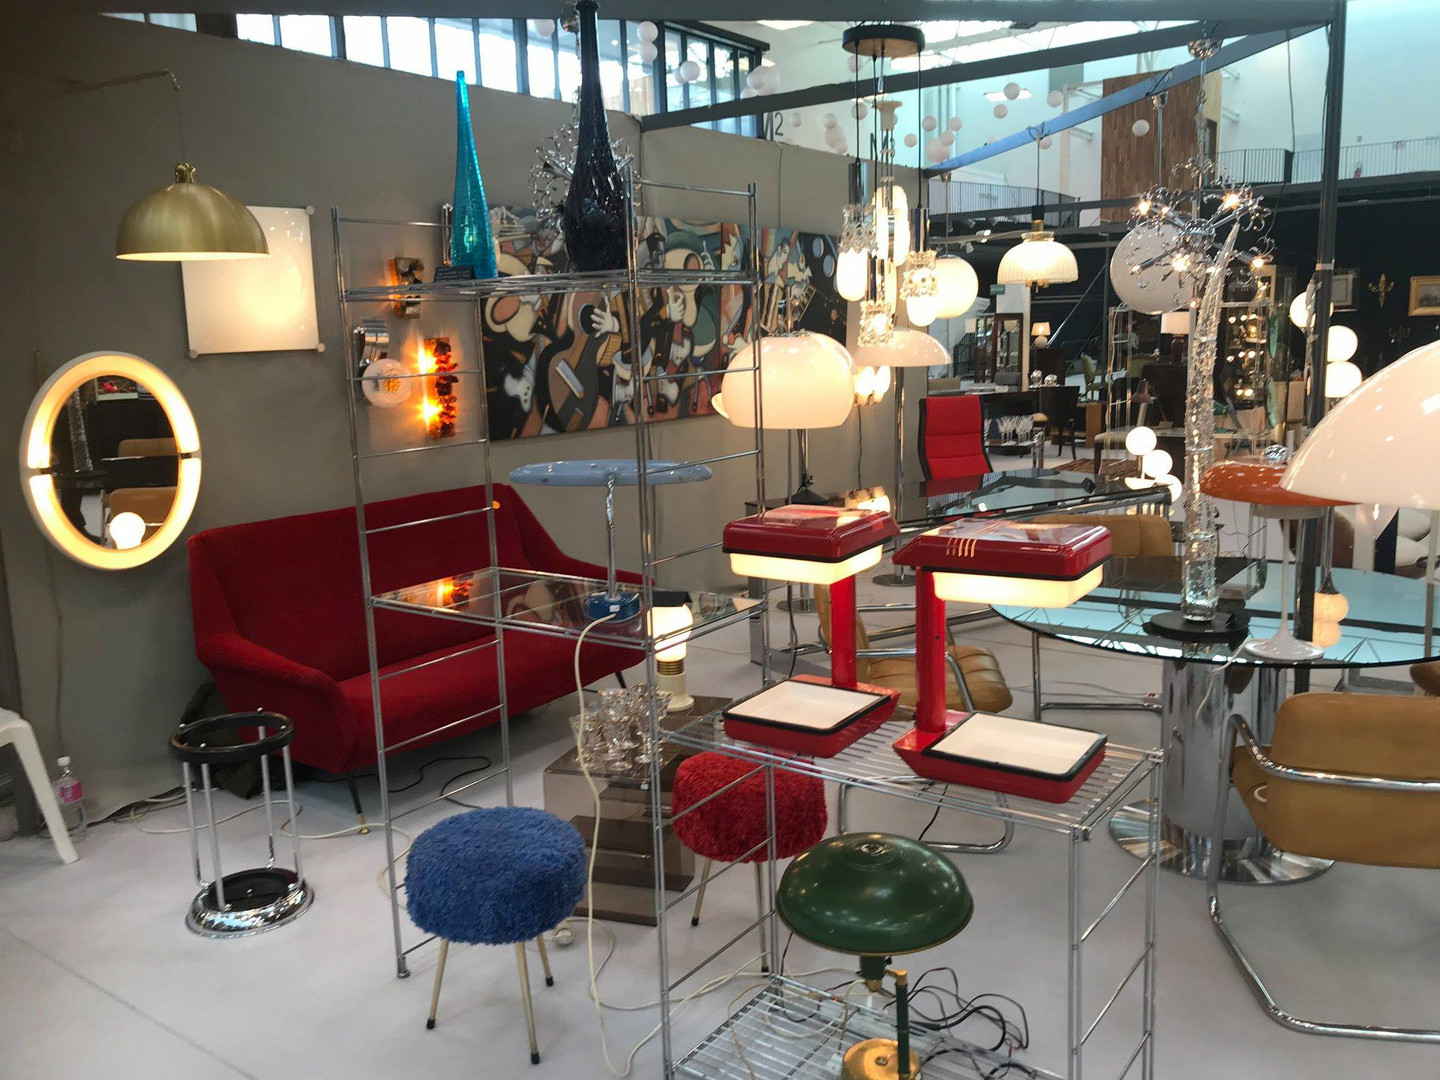 Salon_des_antiquaires_clermont_ferrand_1